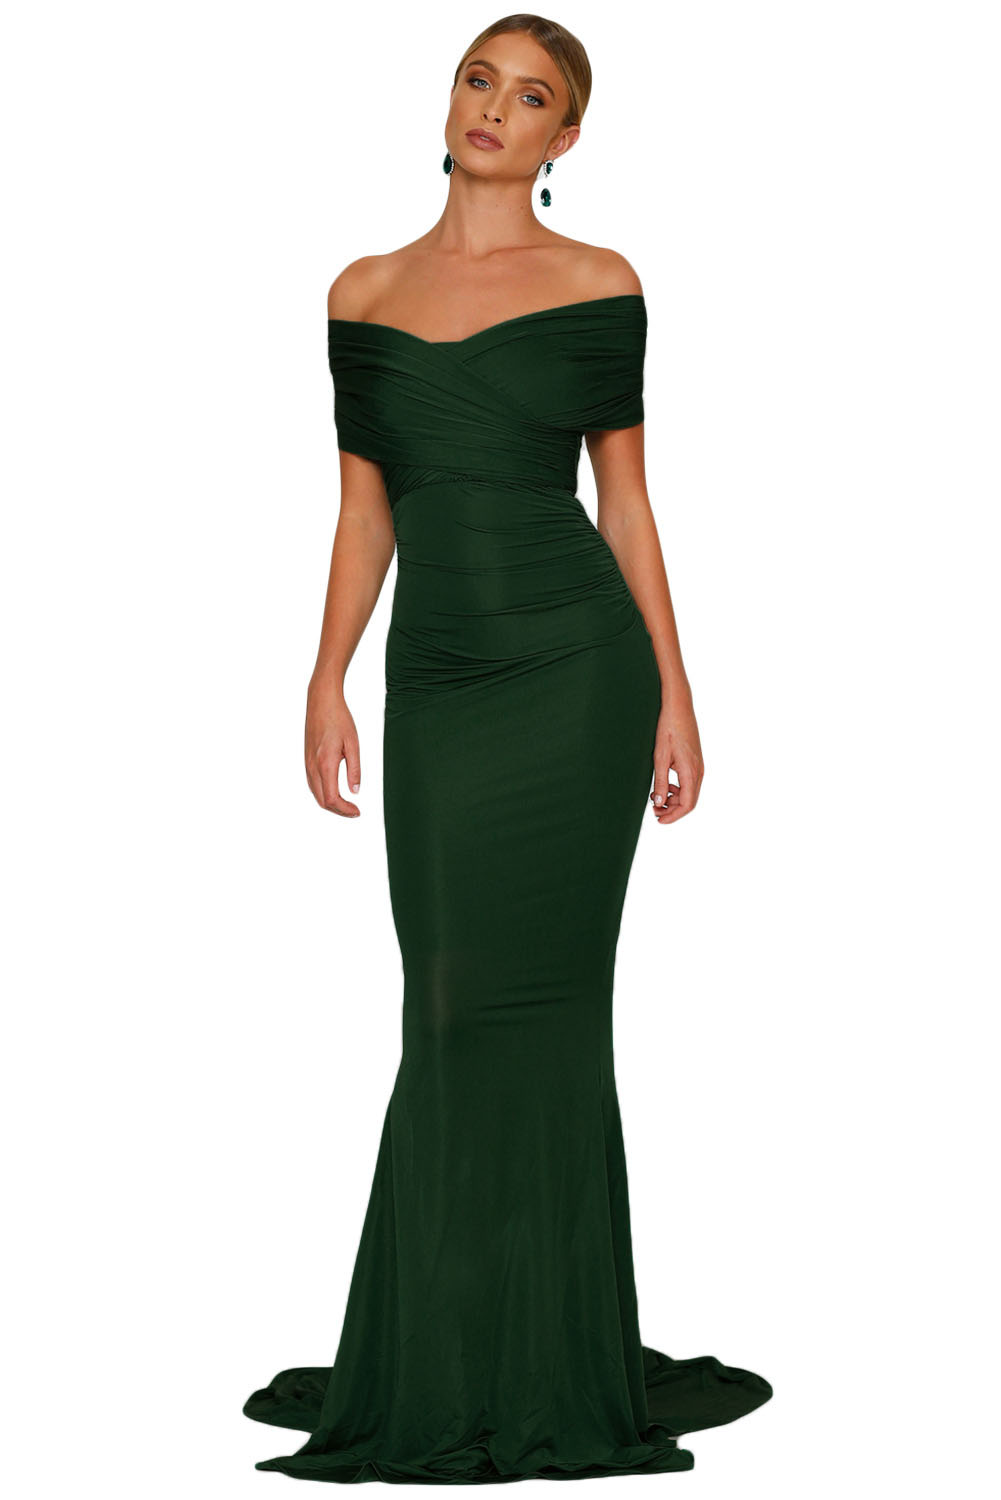 Emerald Off-shoulder Mermaid Wedding Party Gown